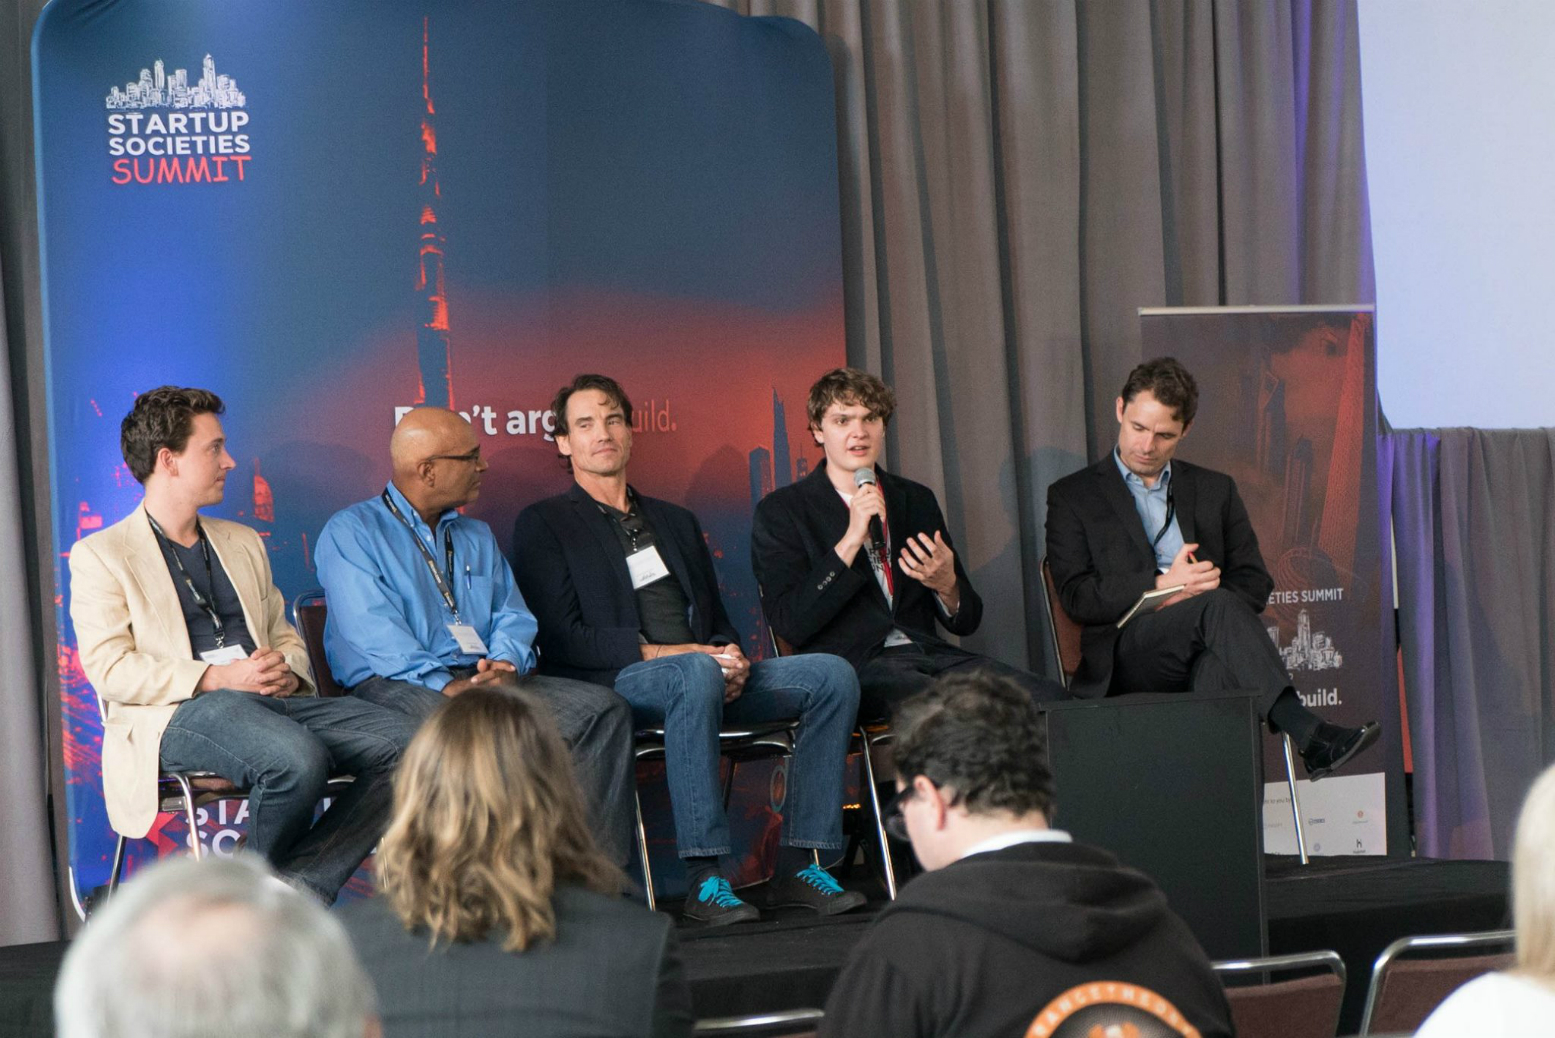 Thibault Serlet speaking in San Francisco during the Special Economic Zones Panel with Tom W Bell, Mark Lutter, Michael Castle Miller, and Park Muelle Zone Manager